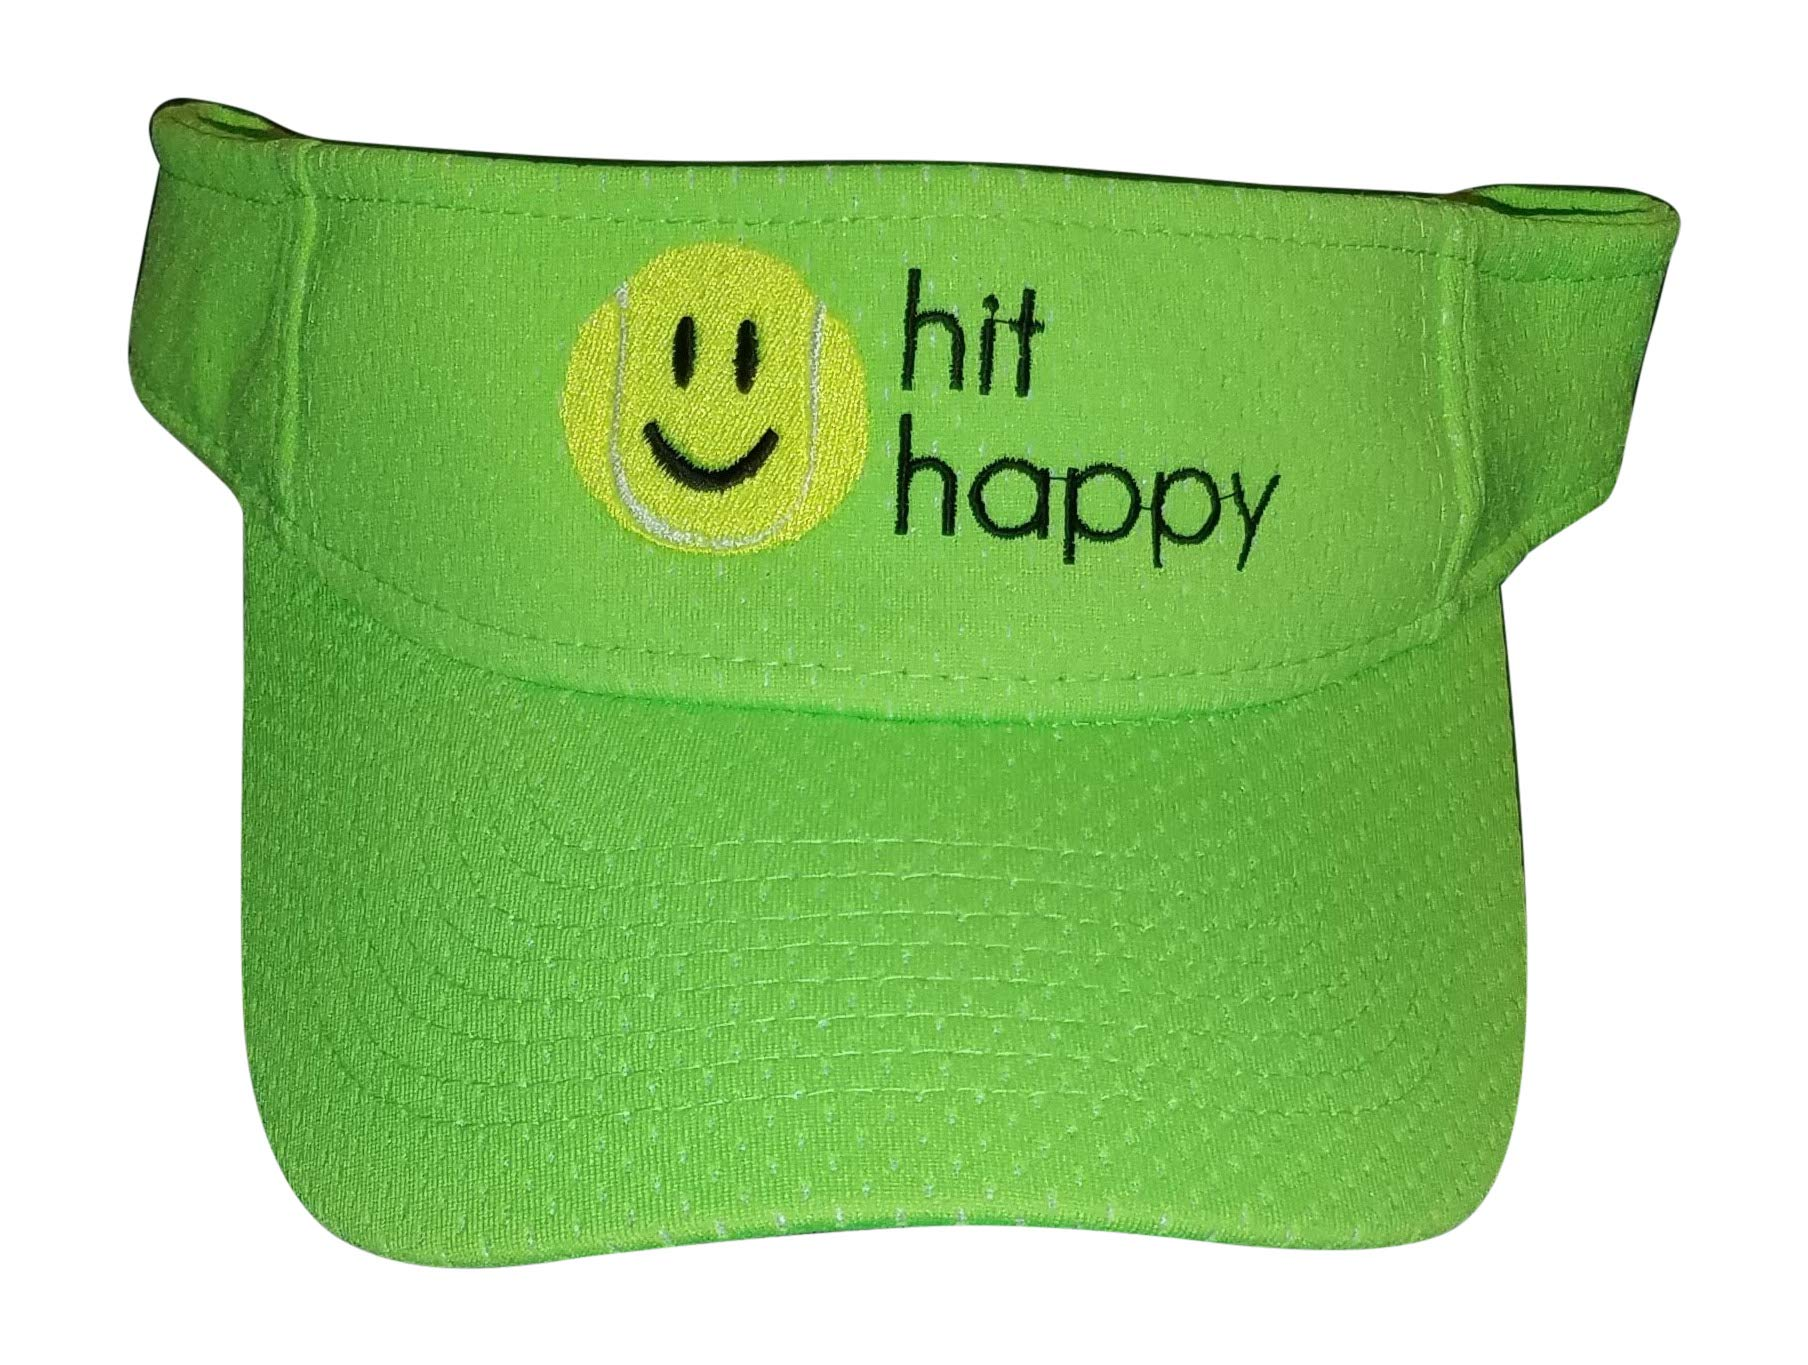 Tennis Visor Hit Happy, Adjustable Strap, Perfect for On The Court Off (Lime Green)